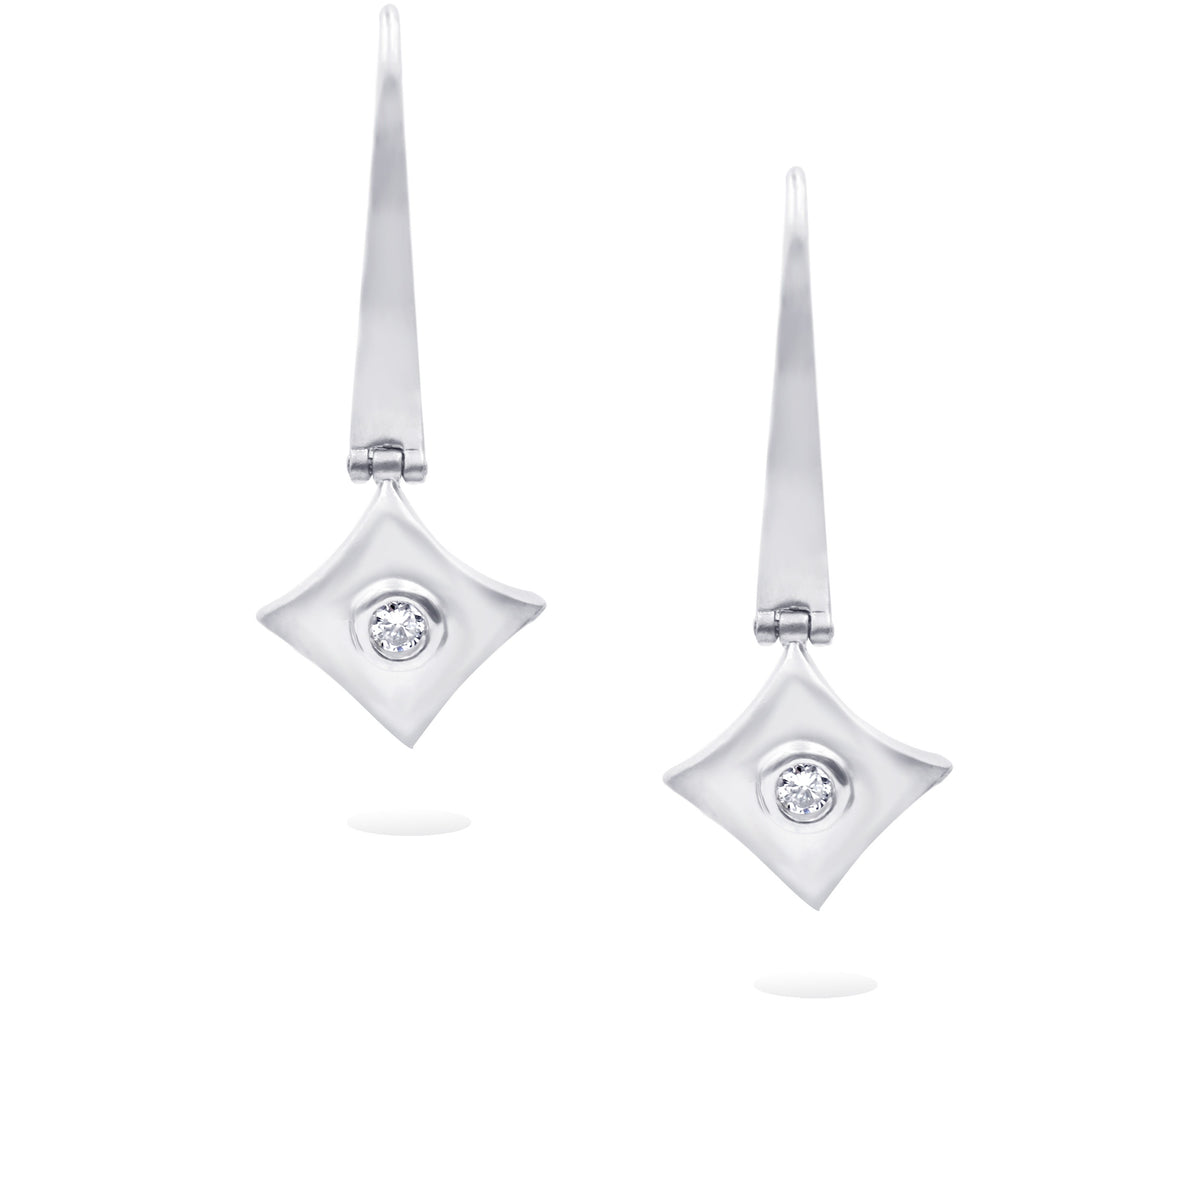 14K White Gold Satin Finish Geometric Diamond Earrings